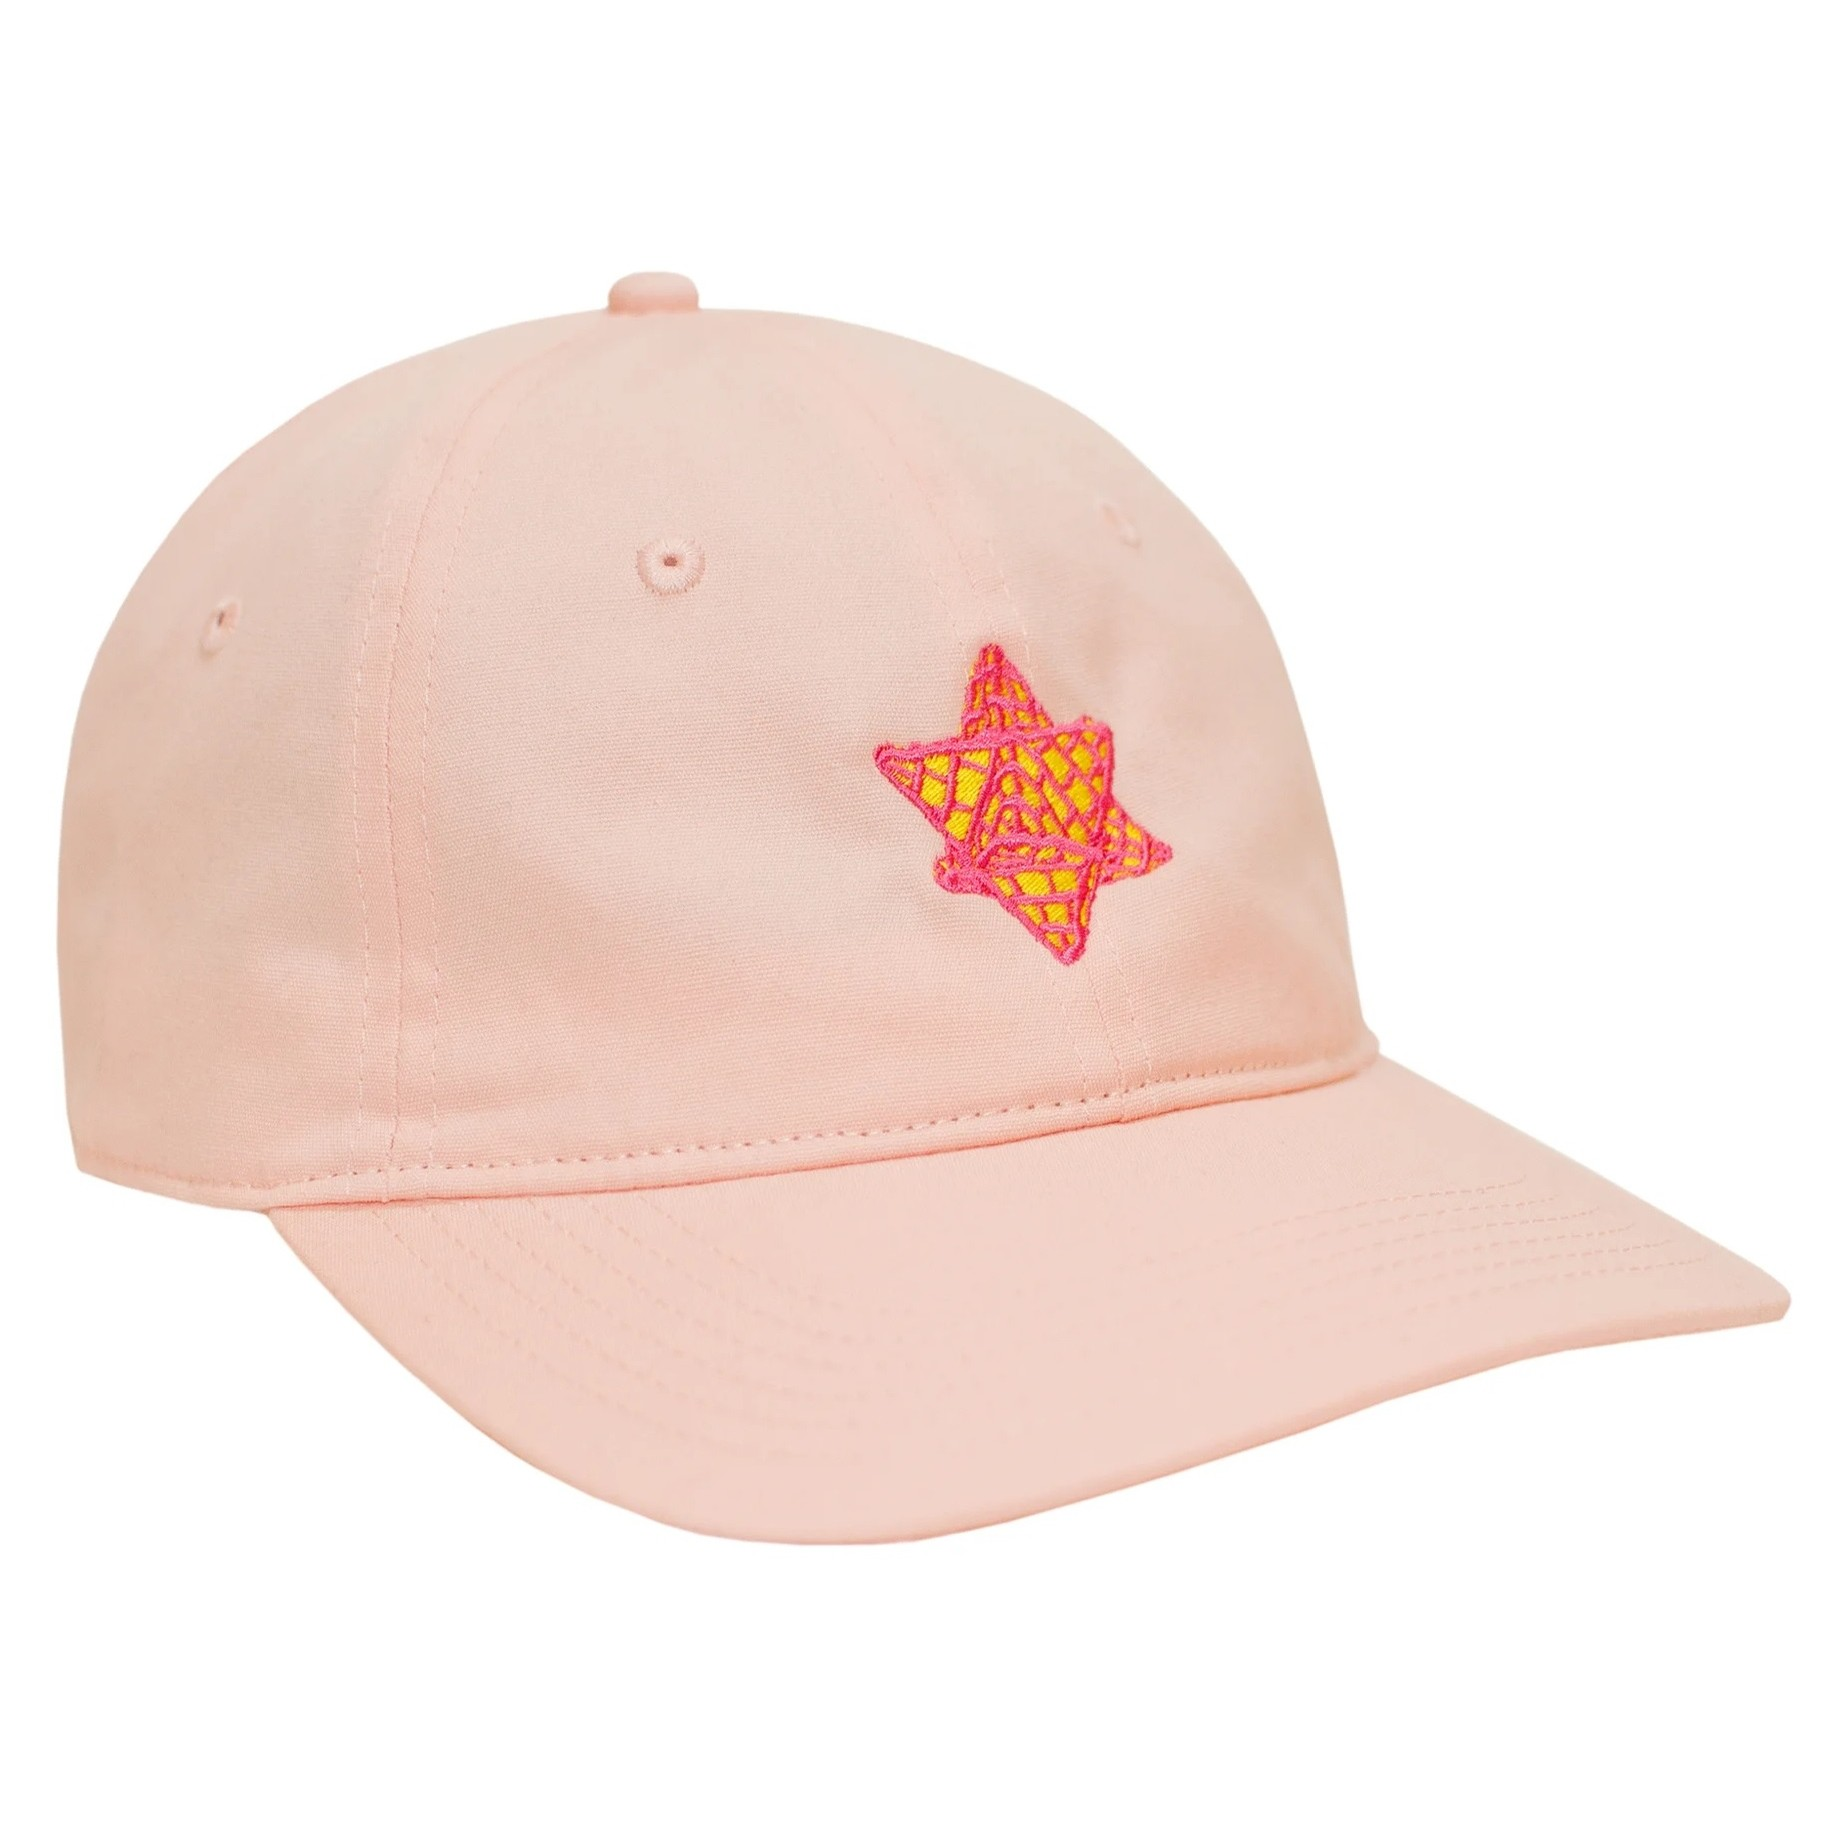 Clay Hat (Pink)